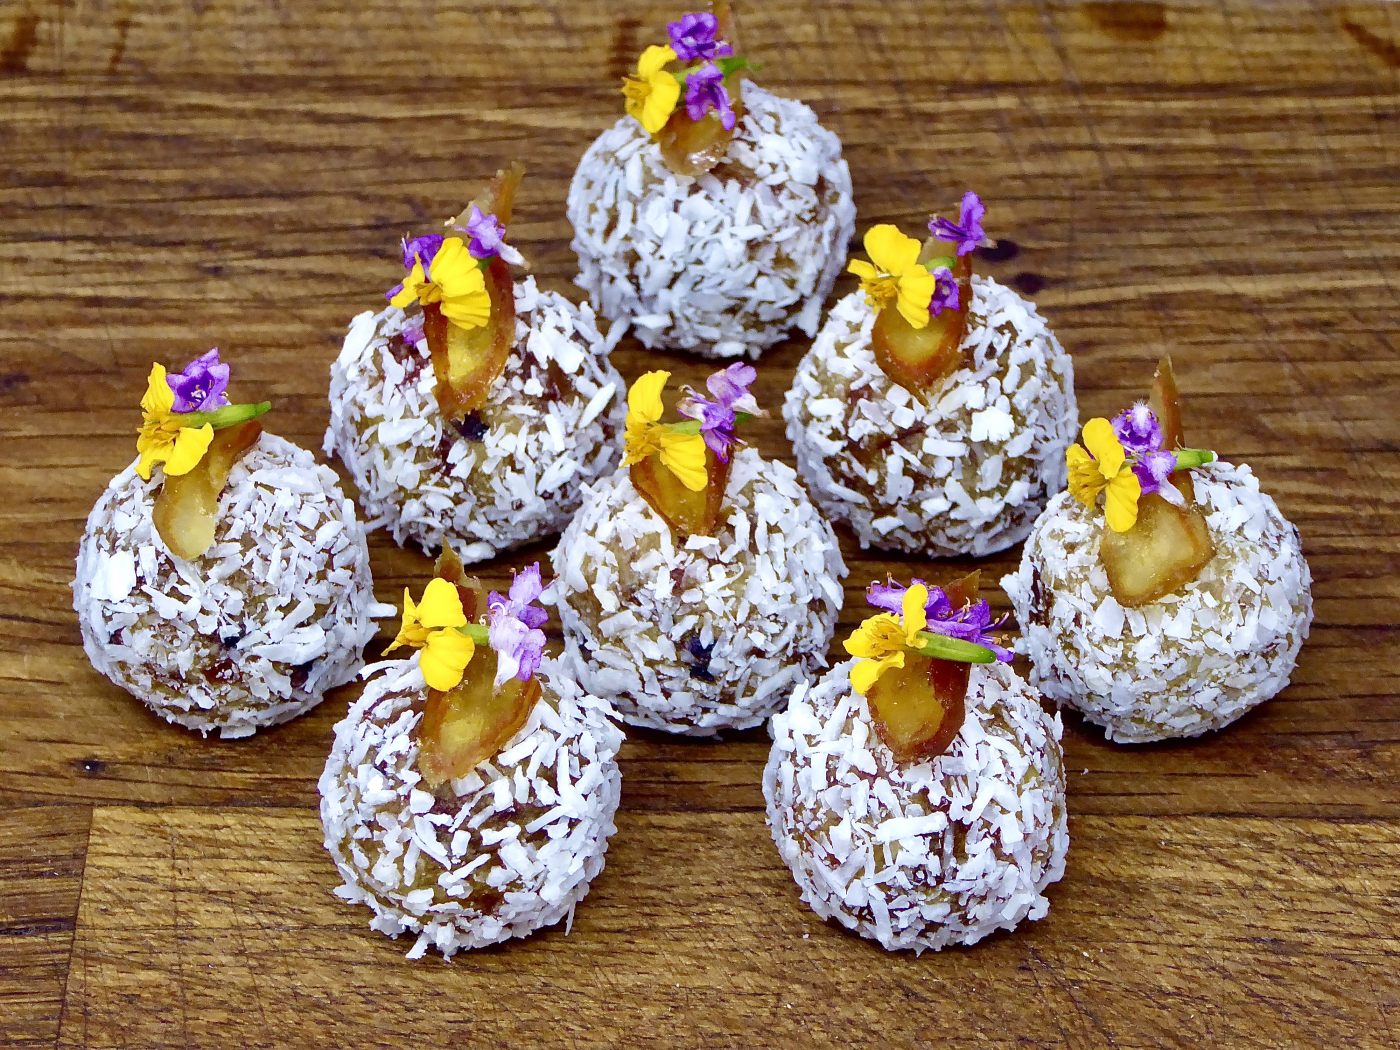 Dates, almond and coconut bonbons